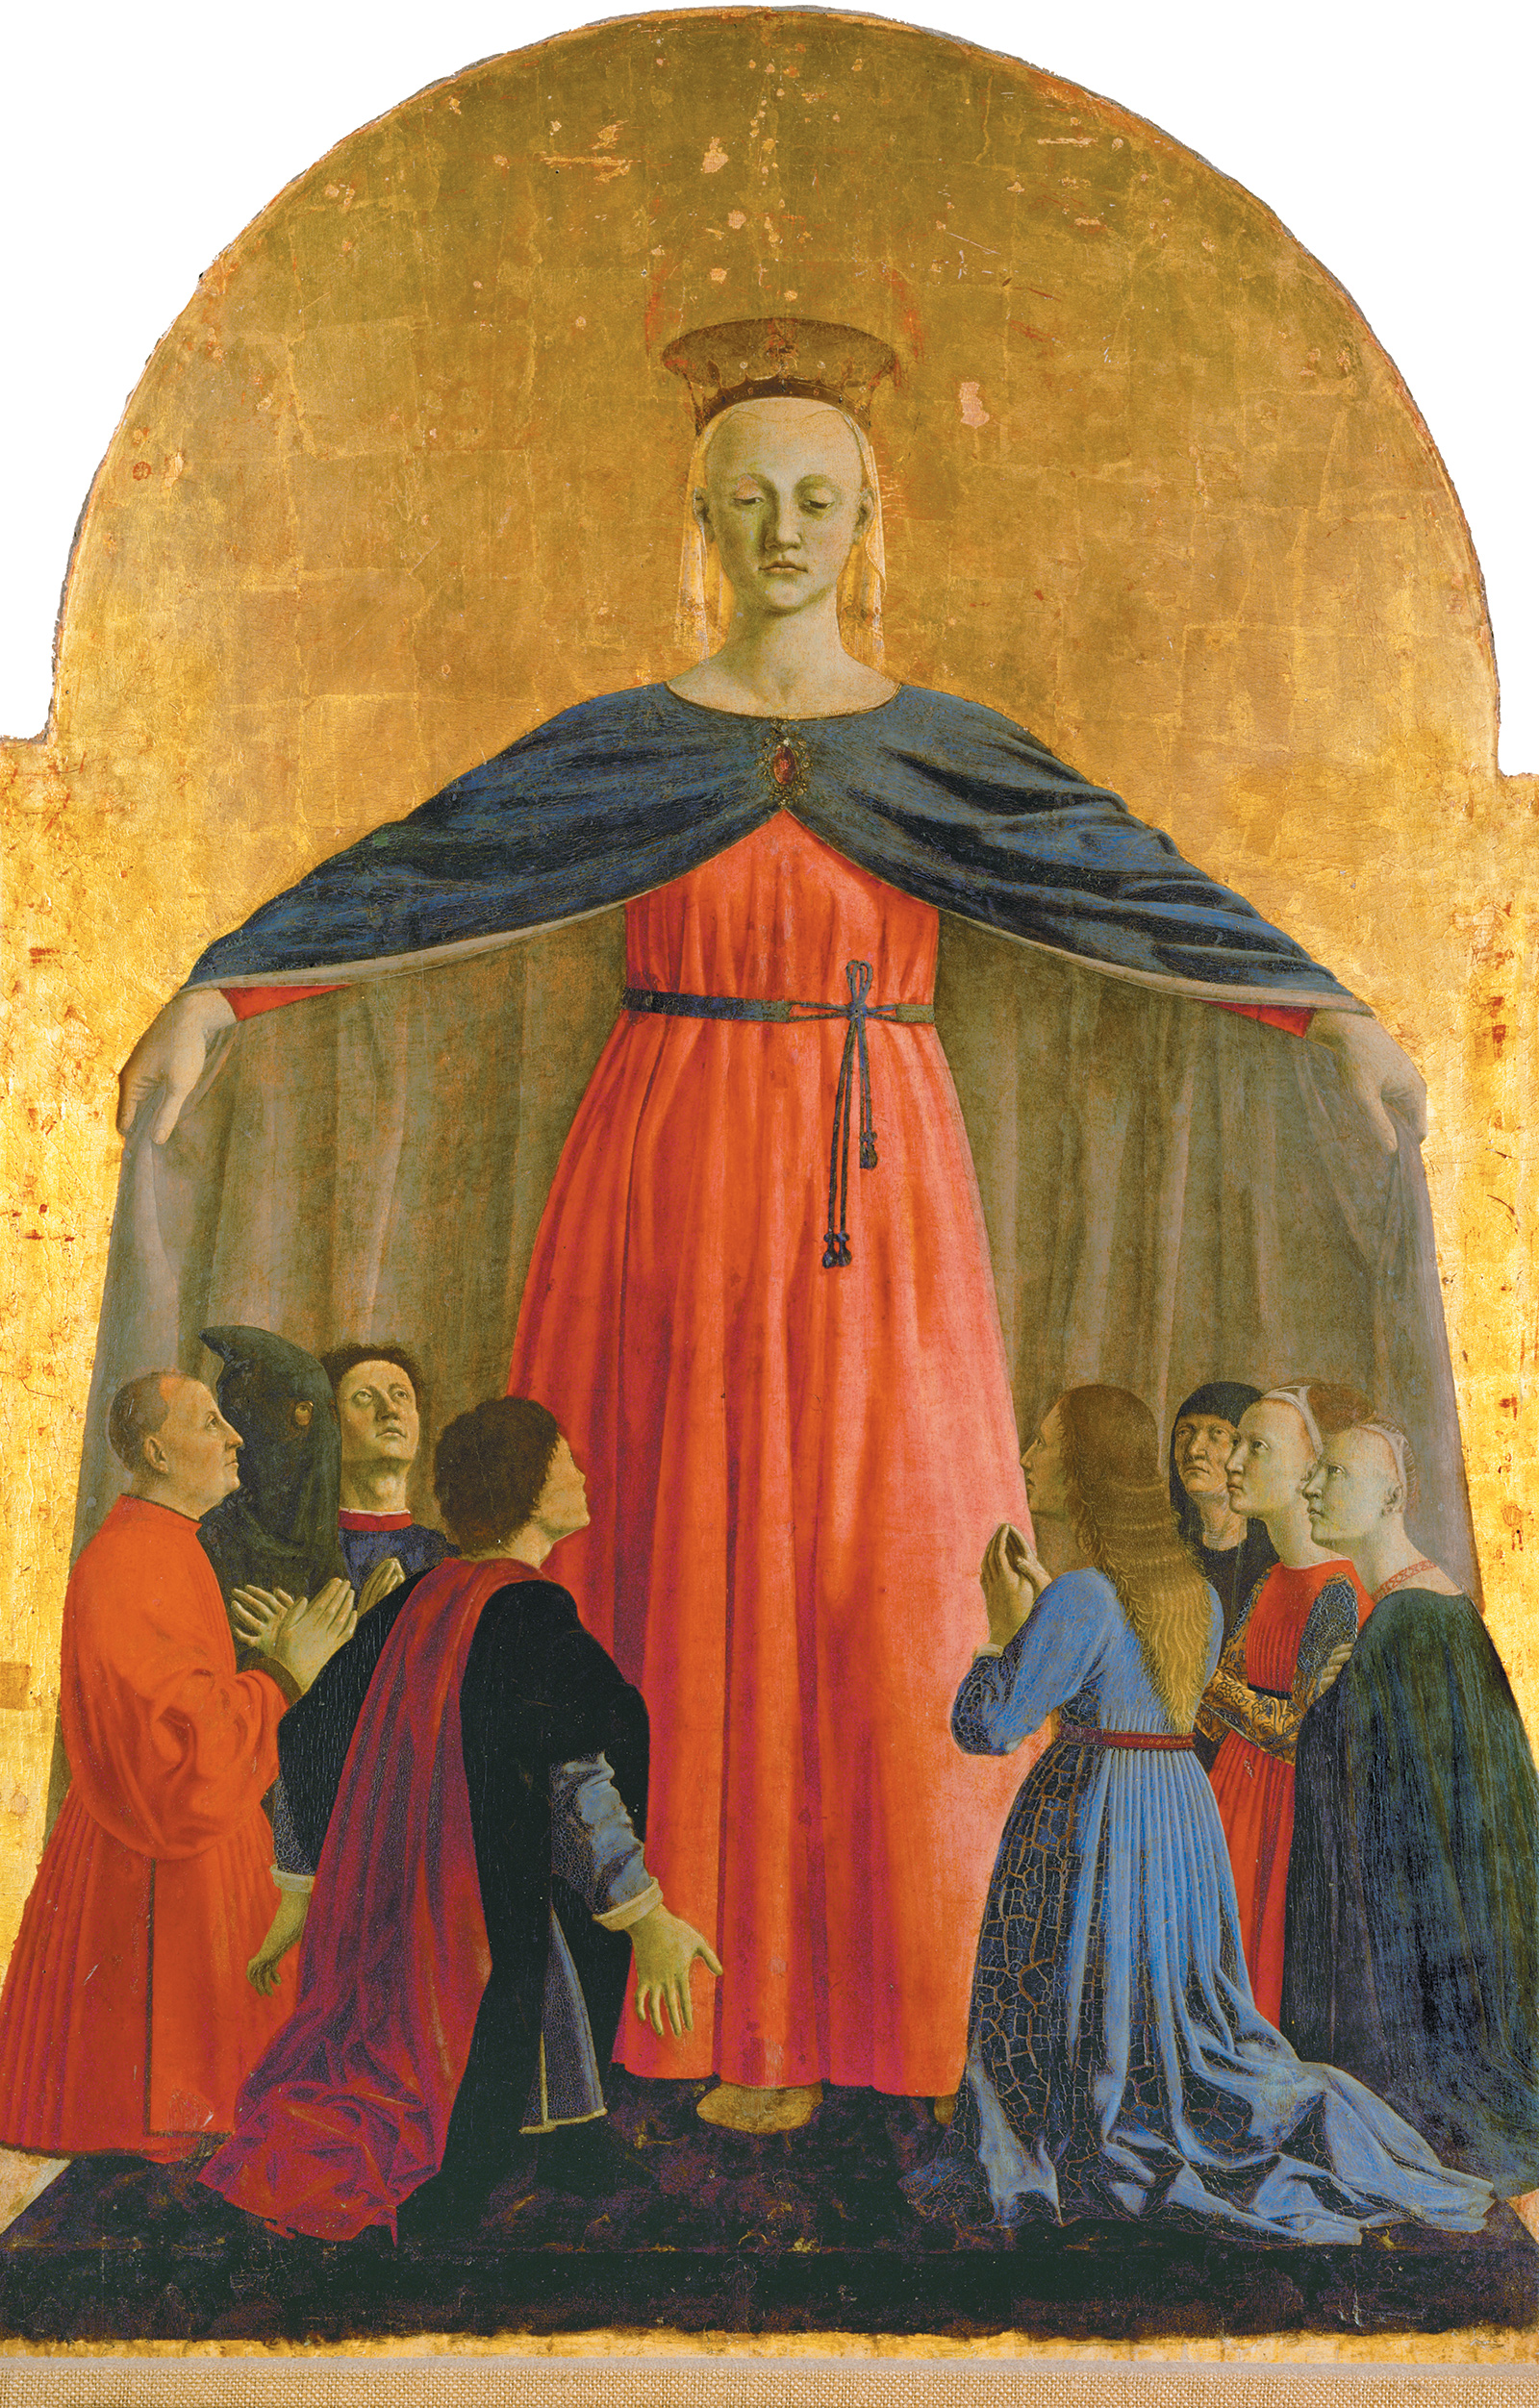 Piero della Francesca: Virgin of Mercy, the center panel of the Misericordia Polyptych, 1445–1462